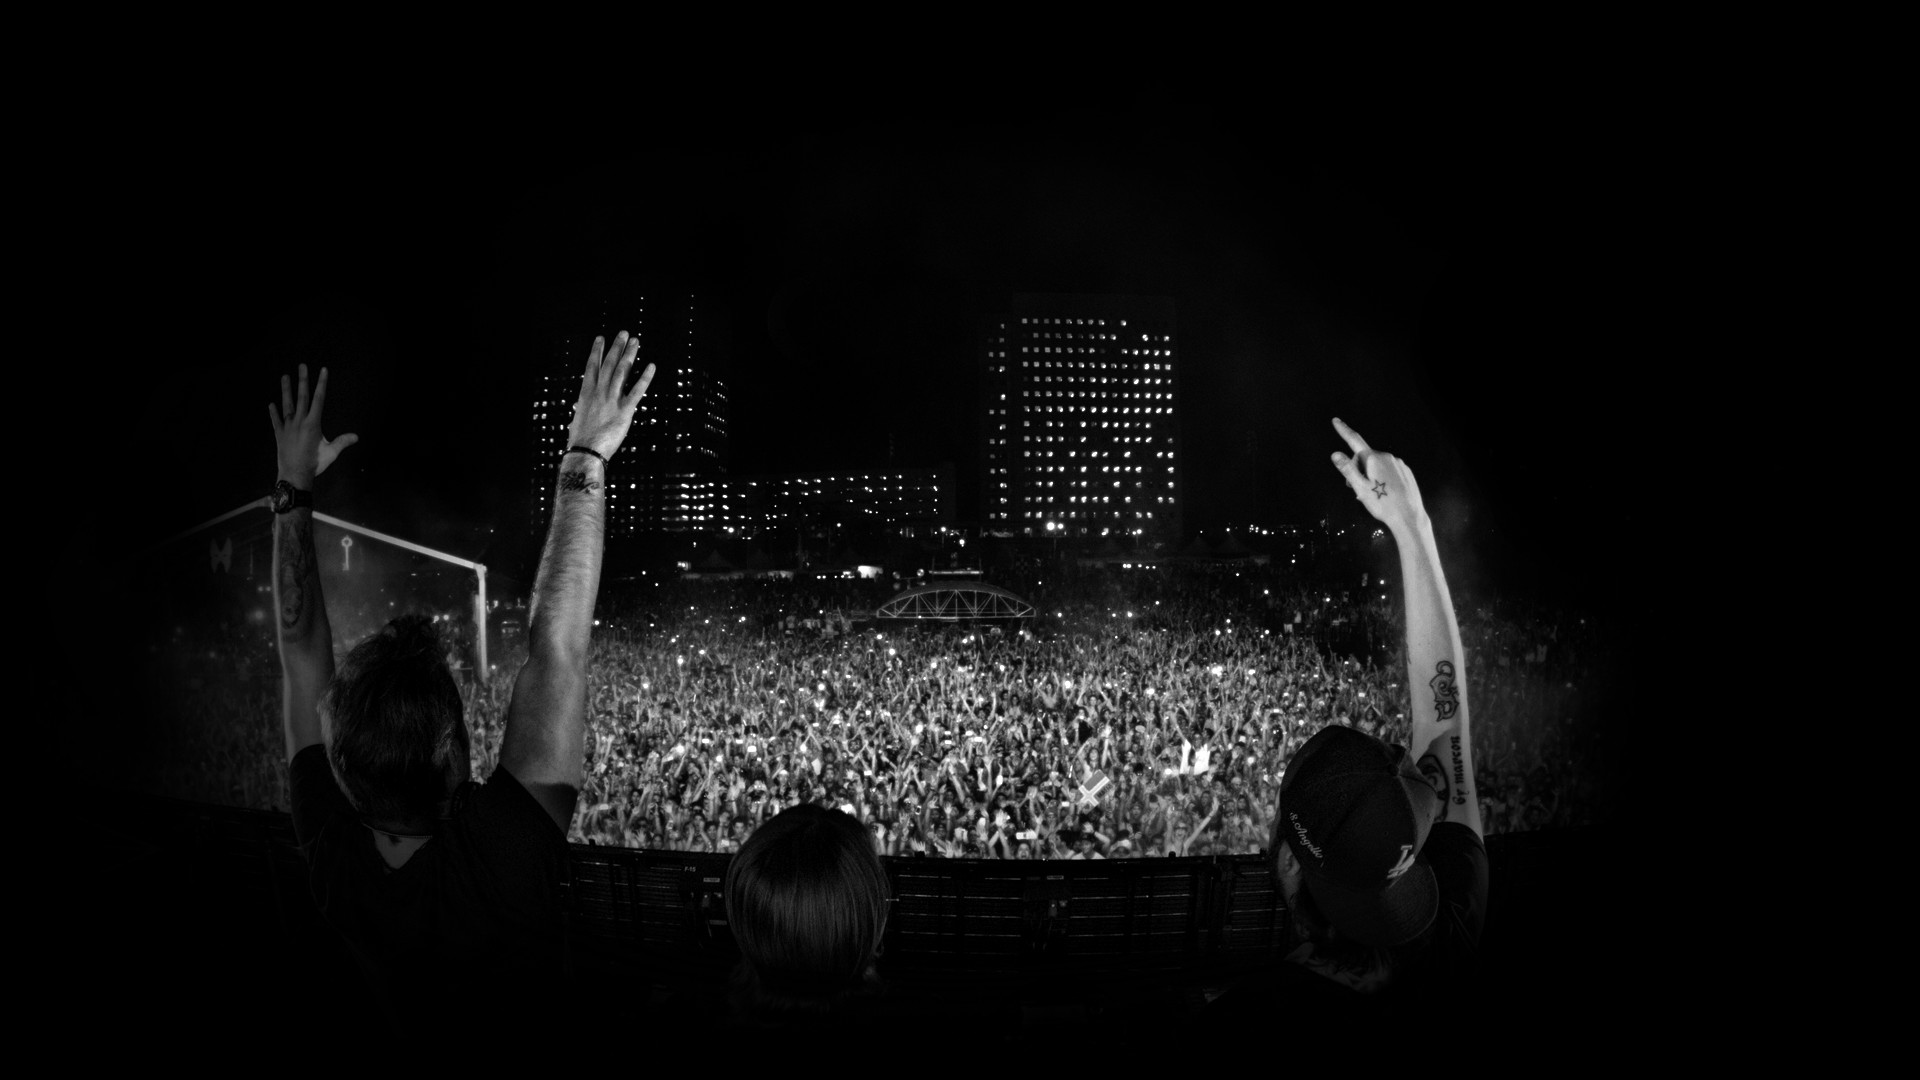 1920x1080 Swedish House Mafia Wallpapers - Wallpaper Cave